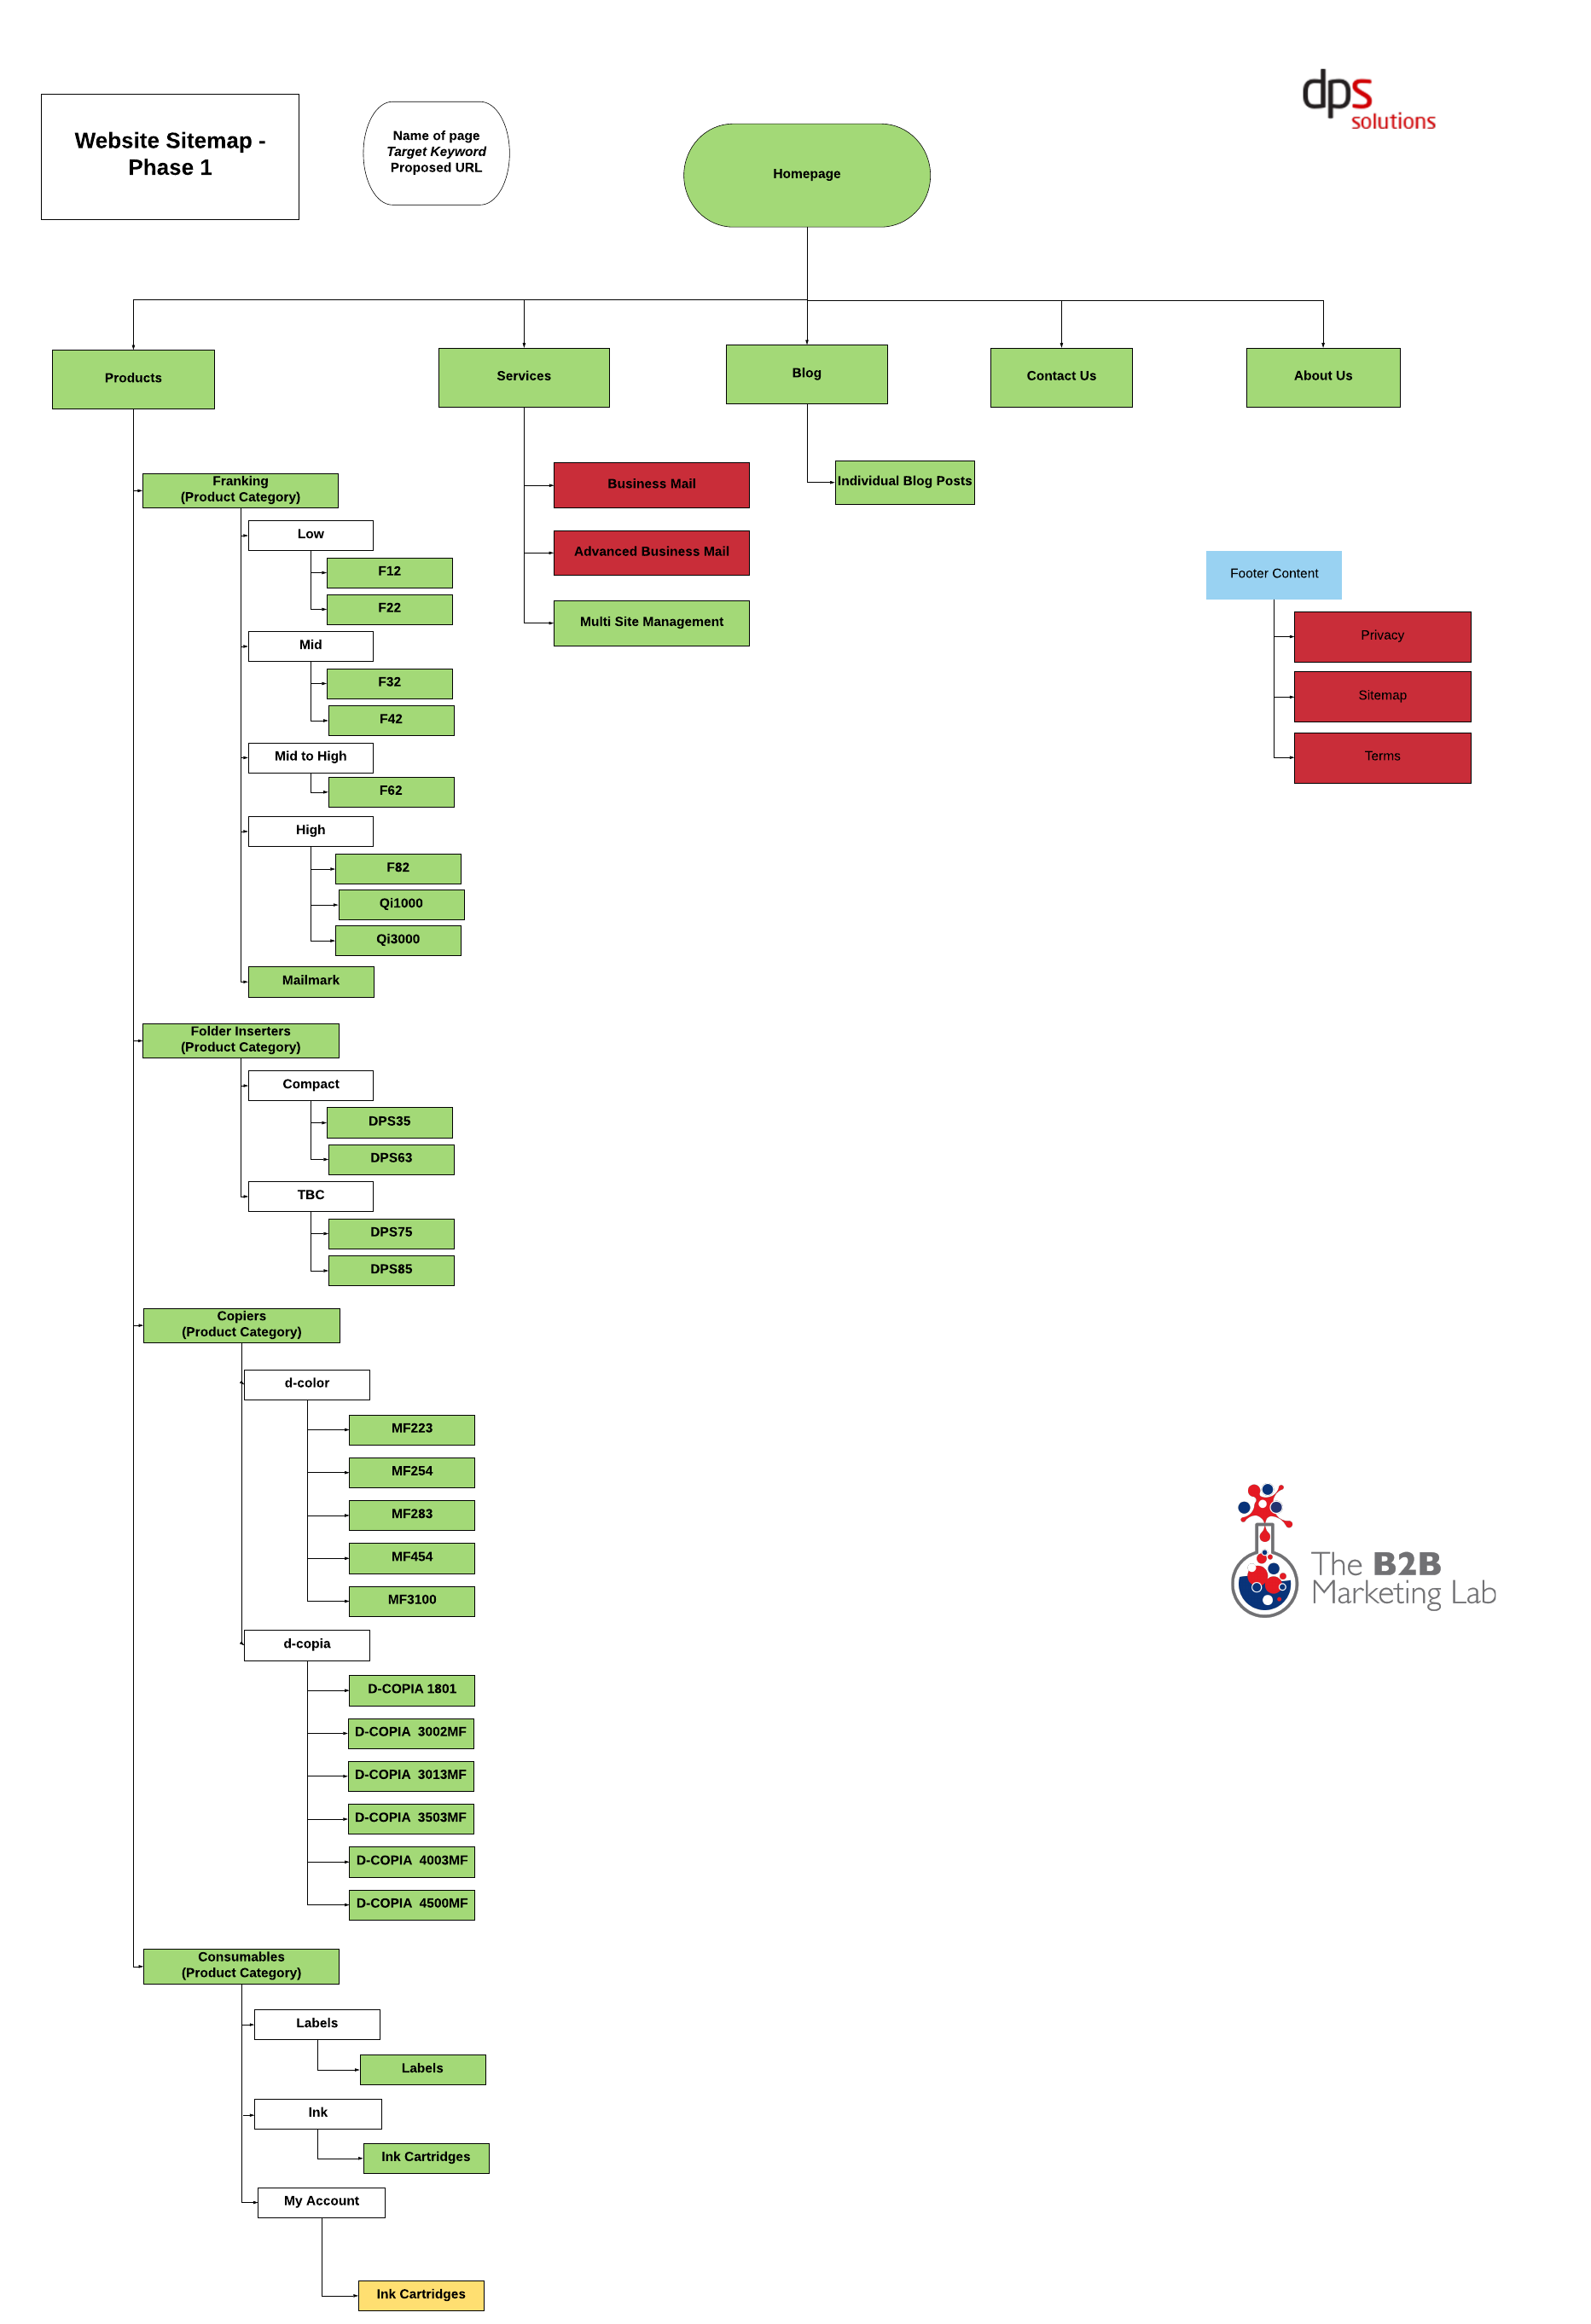 Copy of DPS Sitemap (For use in Case Study) - Page 1-1